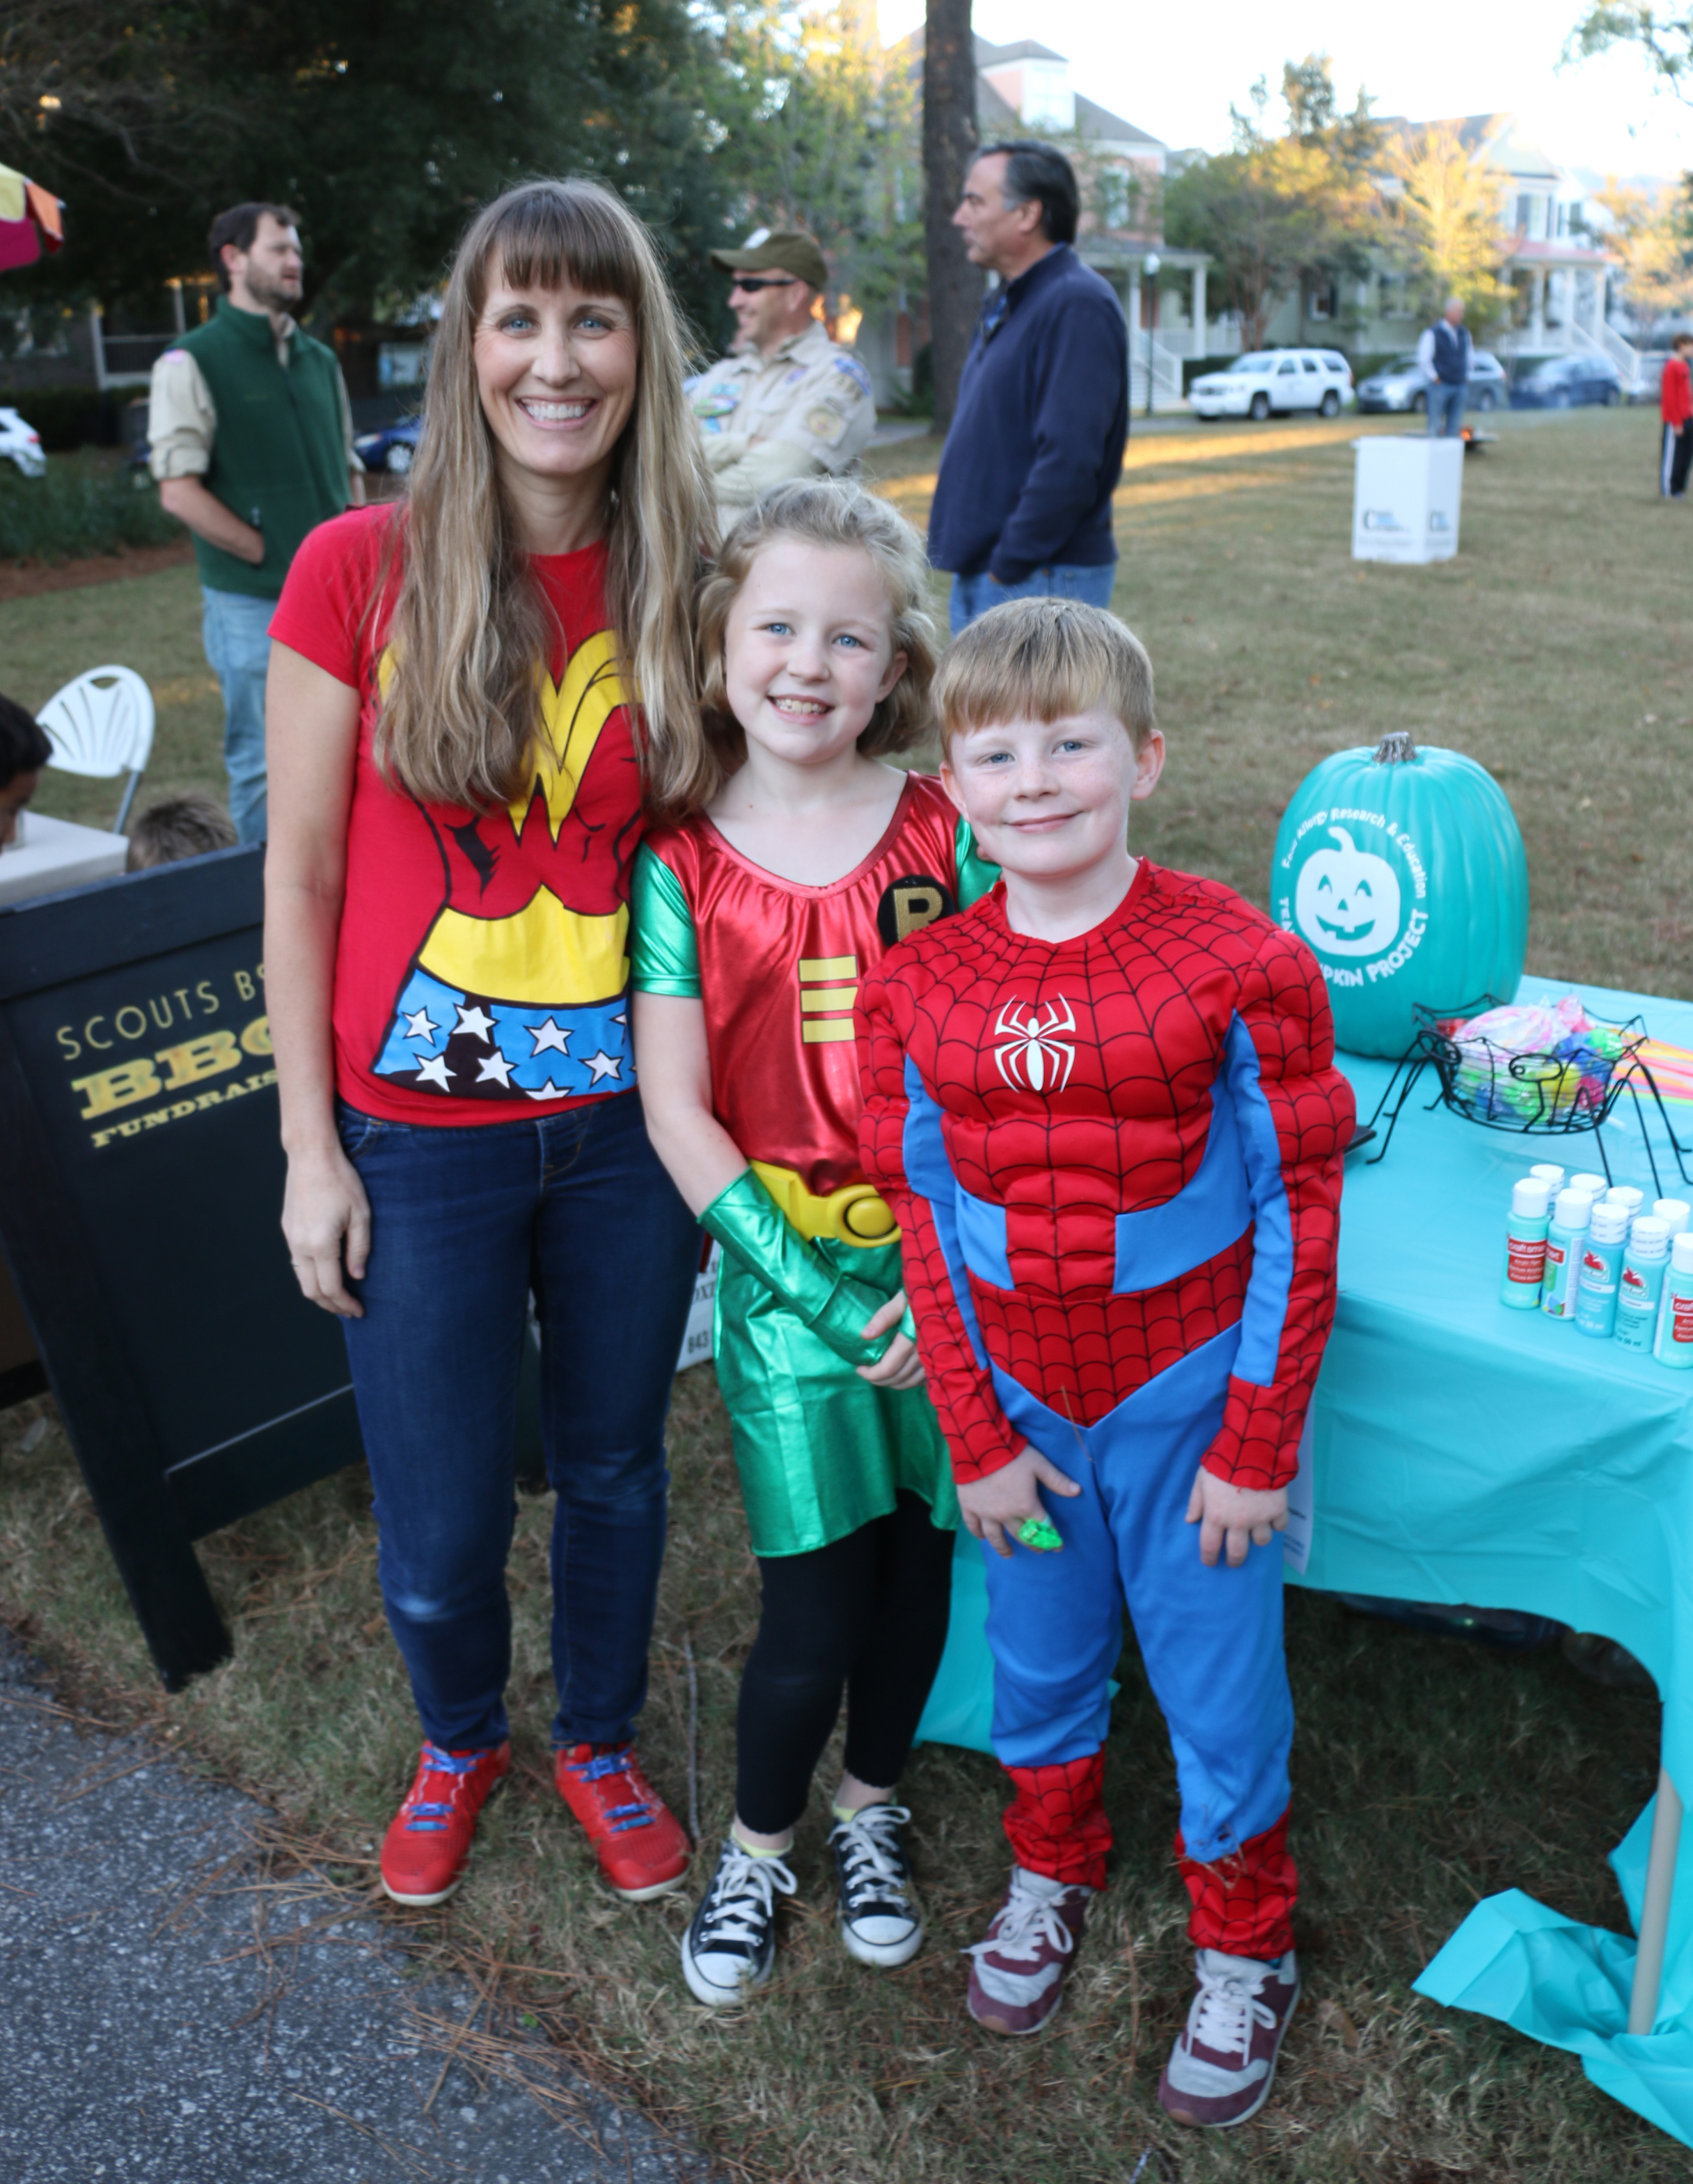 Daniel Island resident Cathy Leeke and her children, Meredith and Grayson, happily spread the word about the Teal Pumpkin Project at the event.